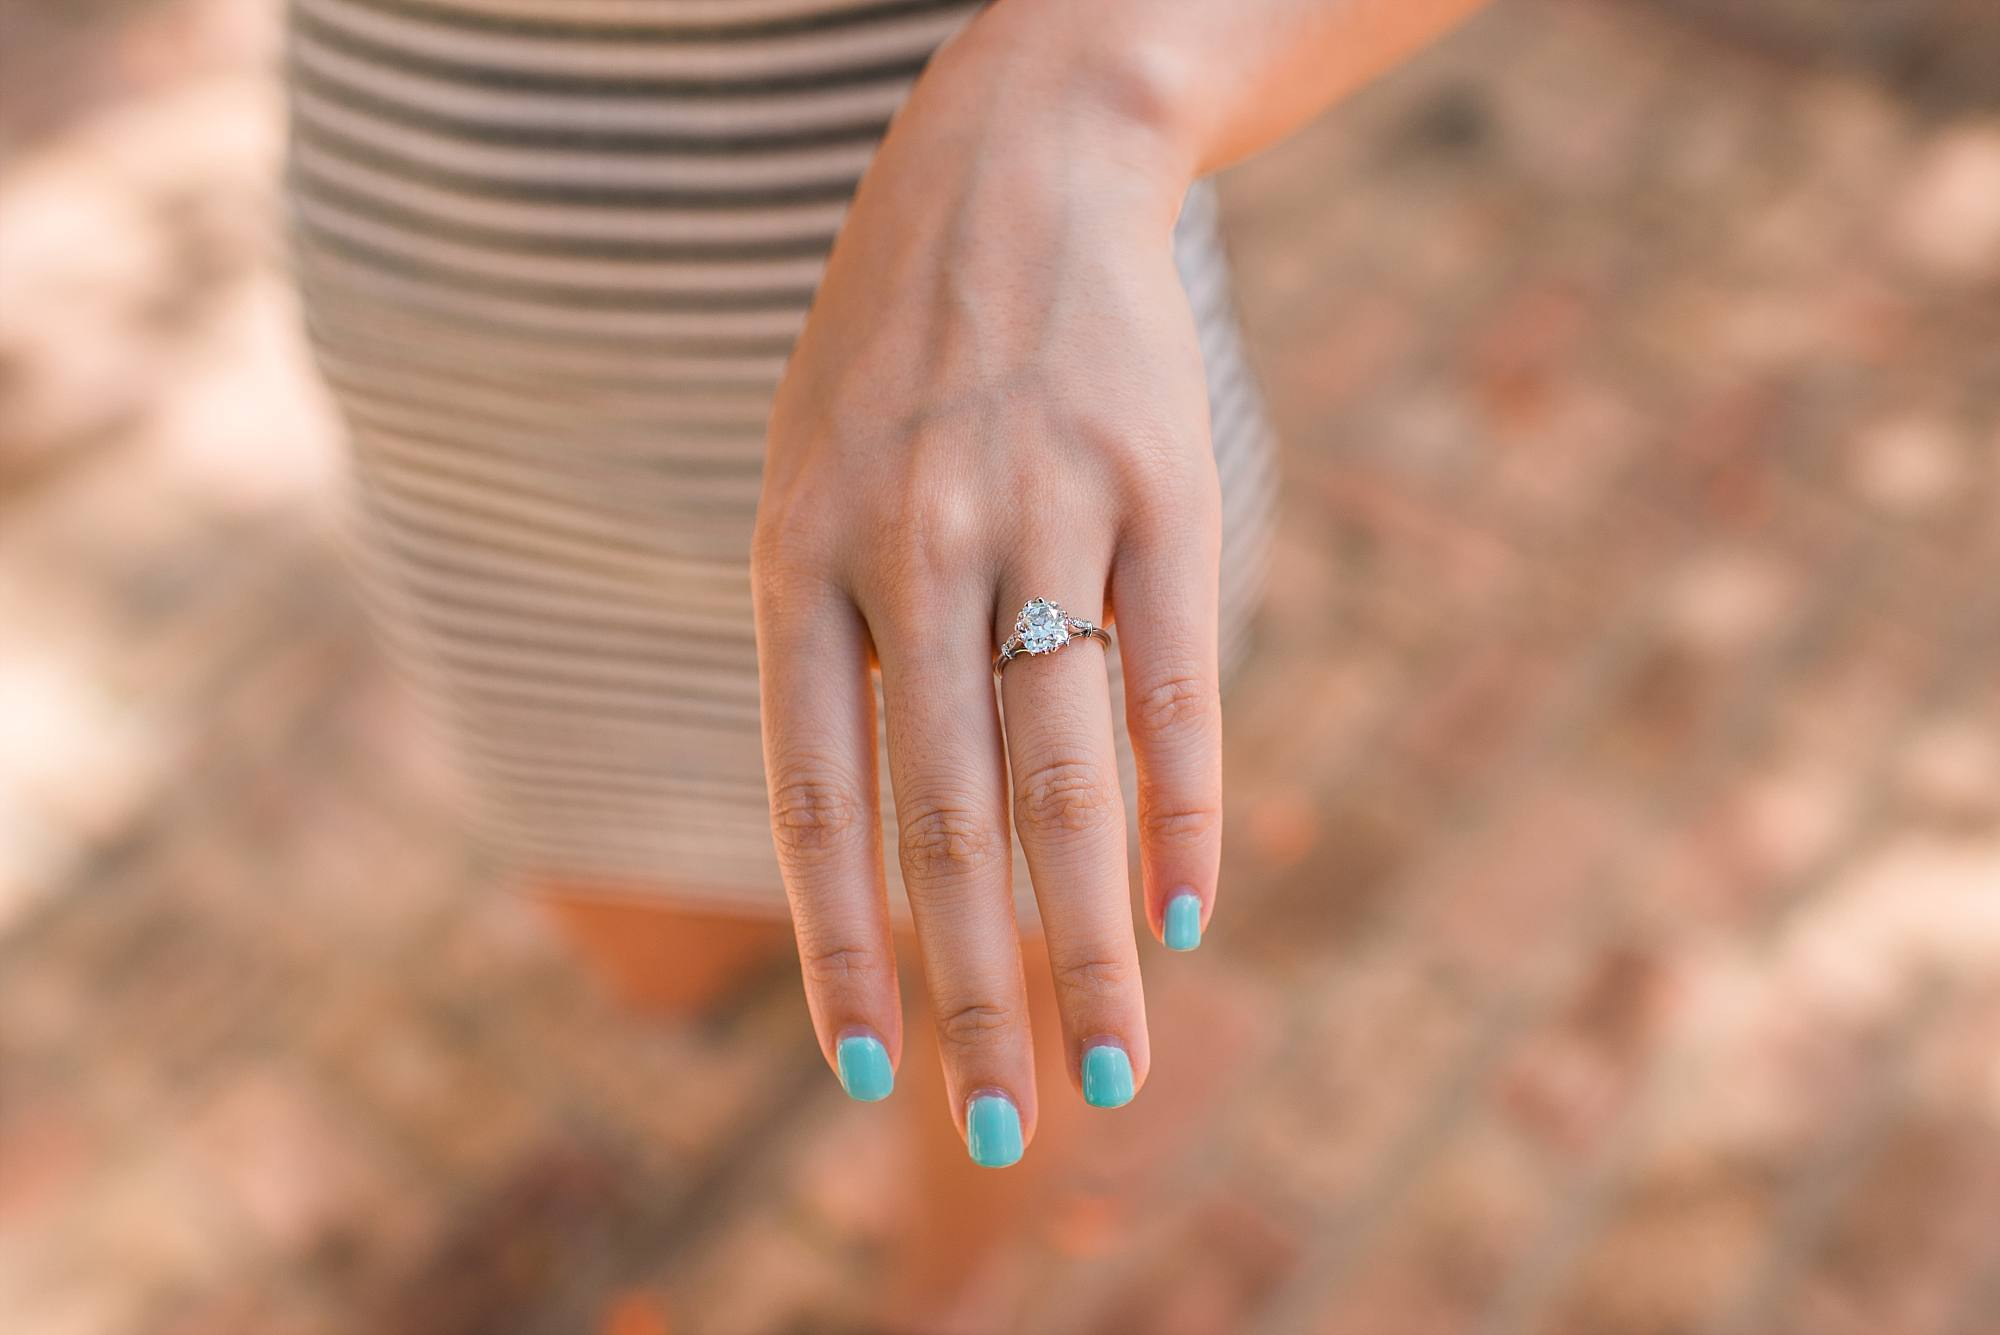 Newly engaged woman showing off her hand with her engagement ring on it